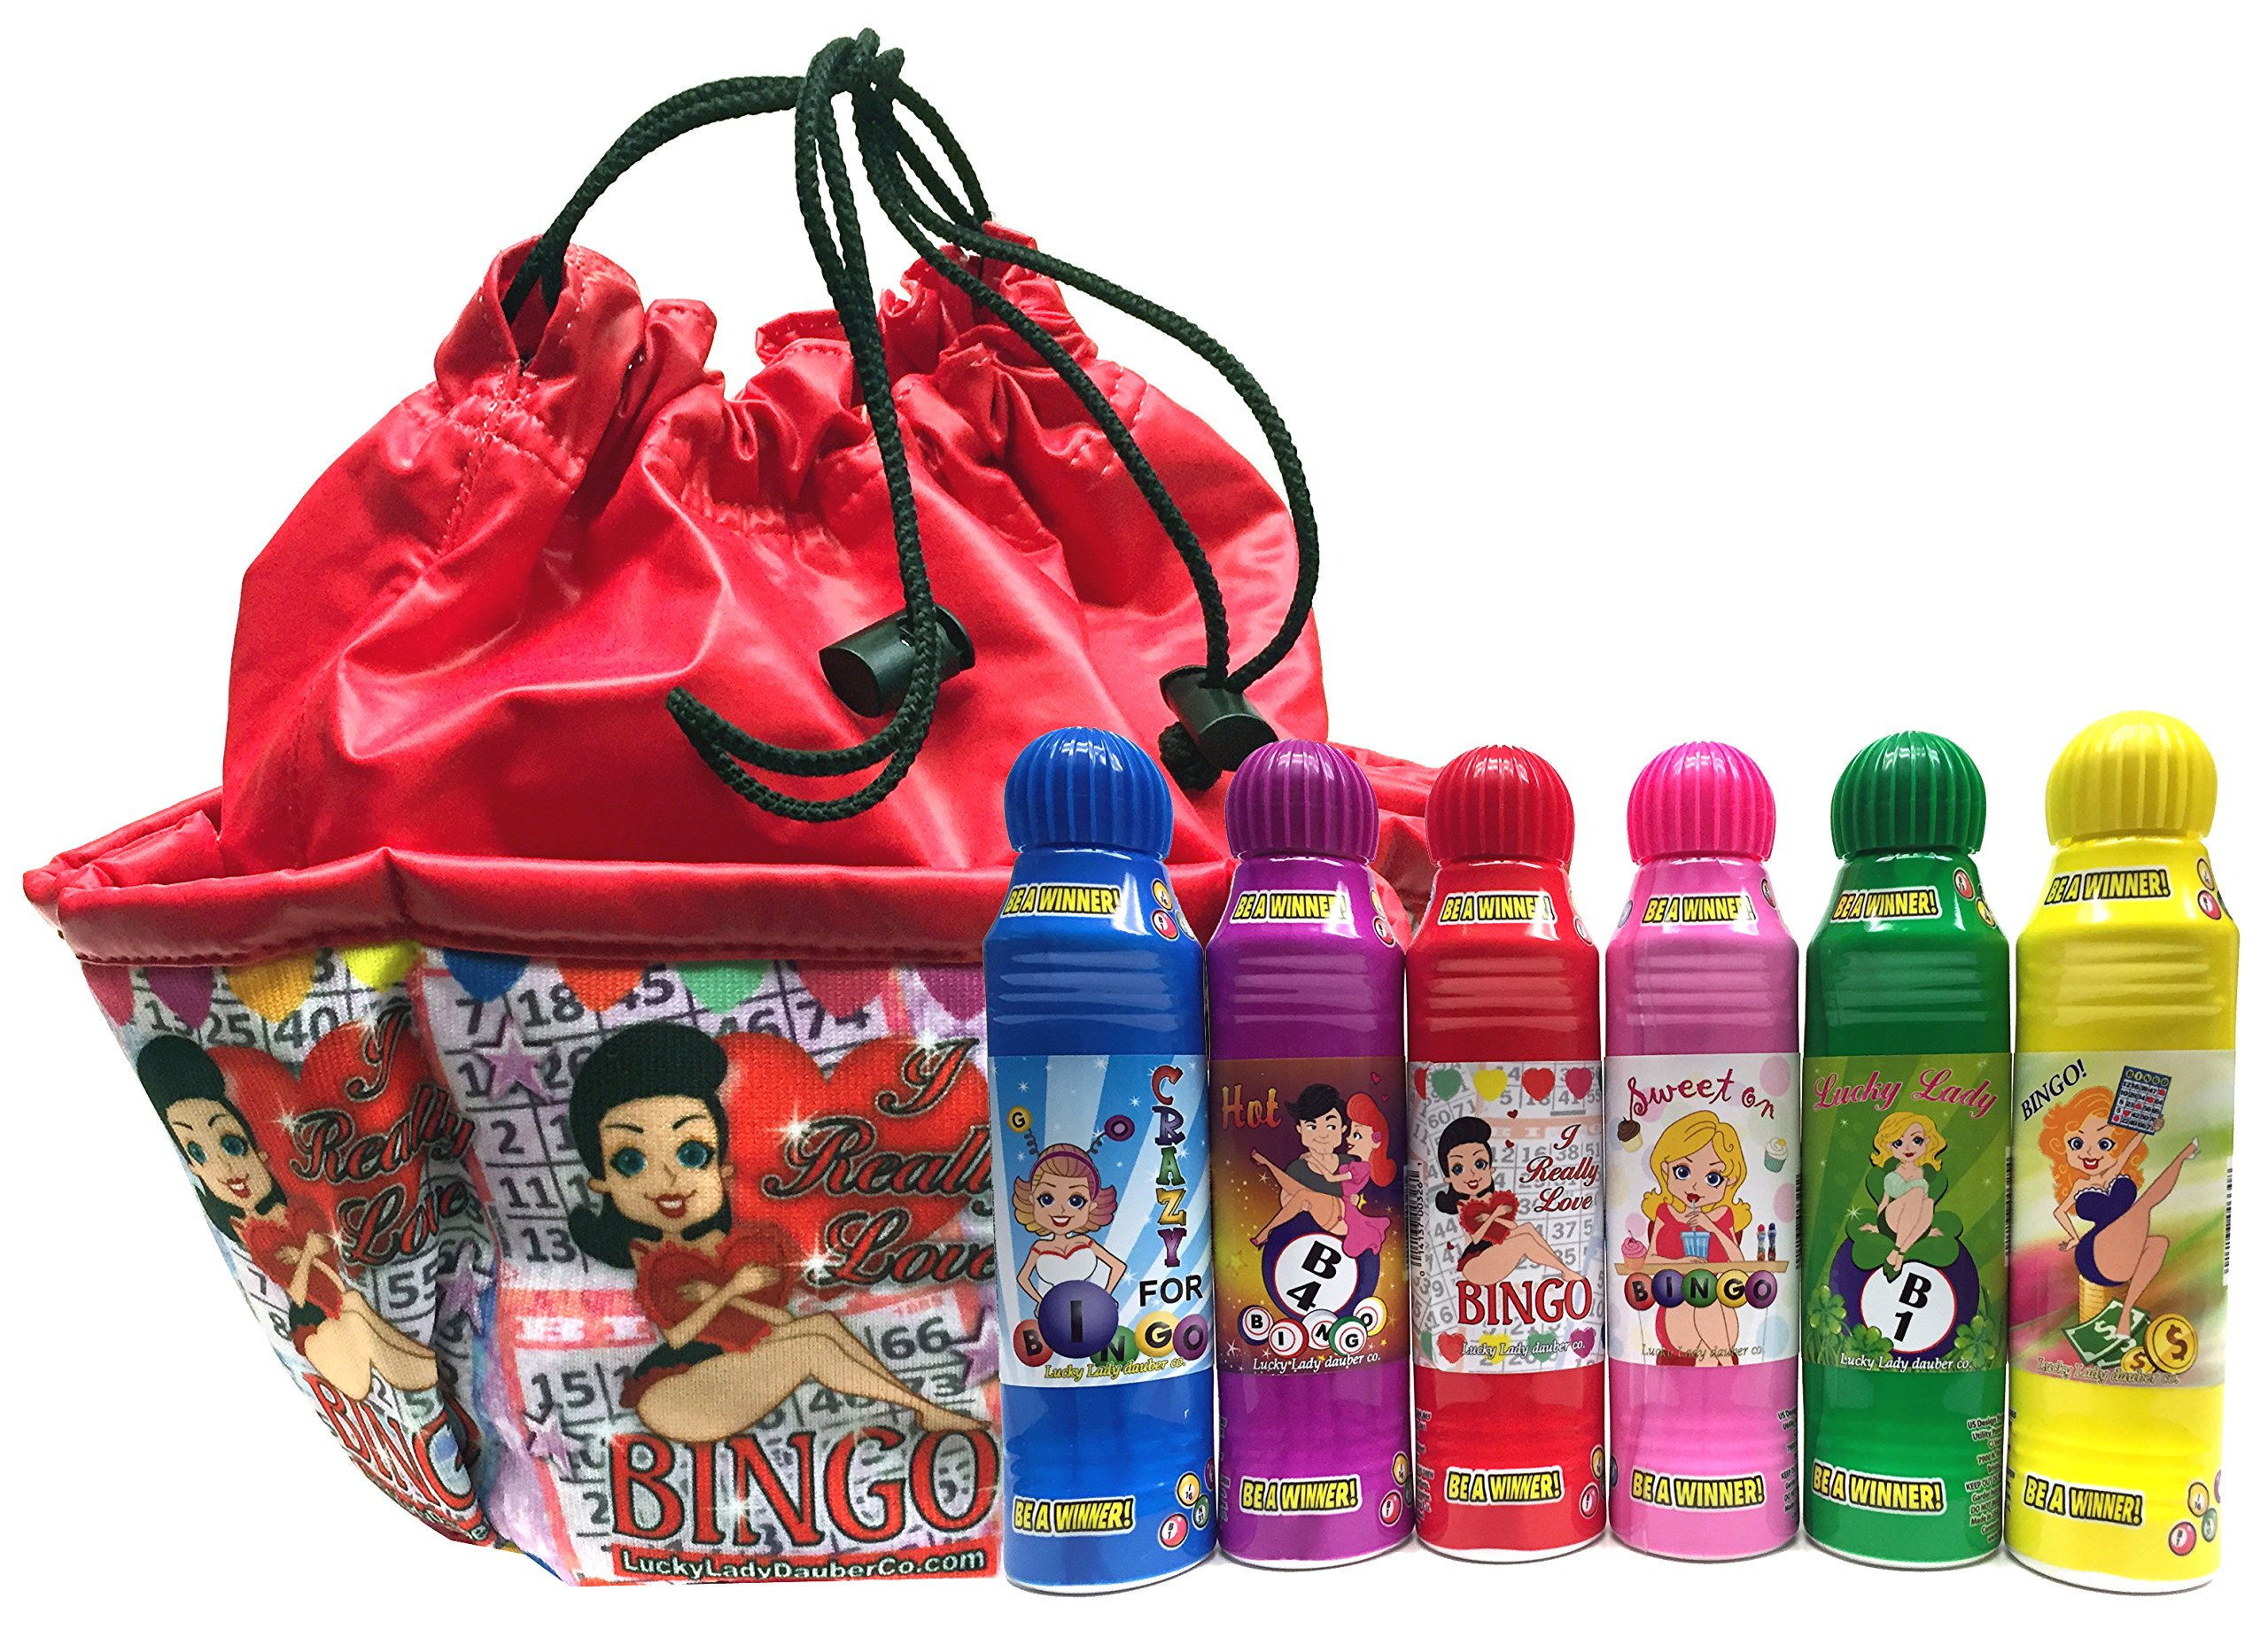 Lucky Lady Bingo Daubers 6-Pack with ''I Really Love Bingo'' Bag!